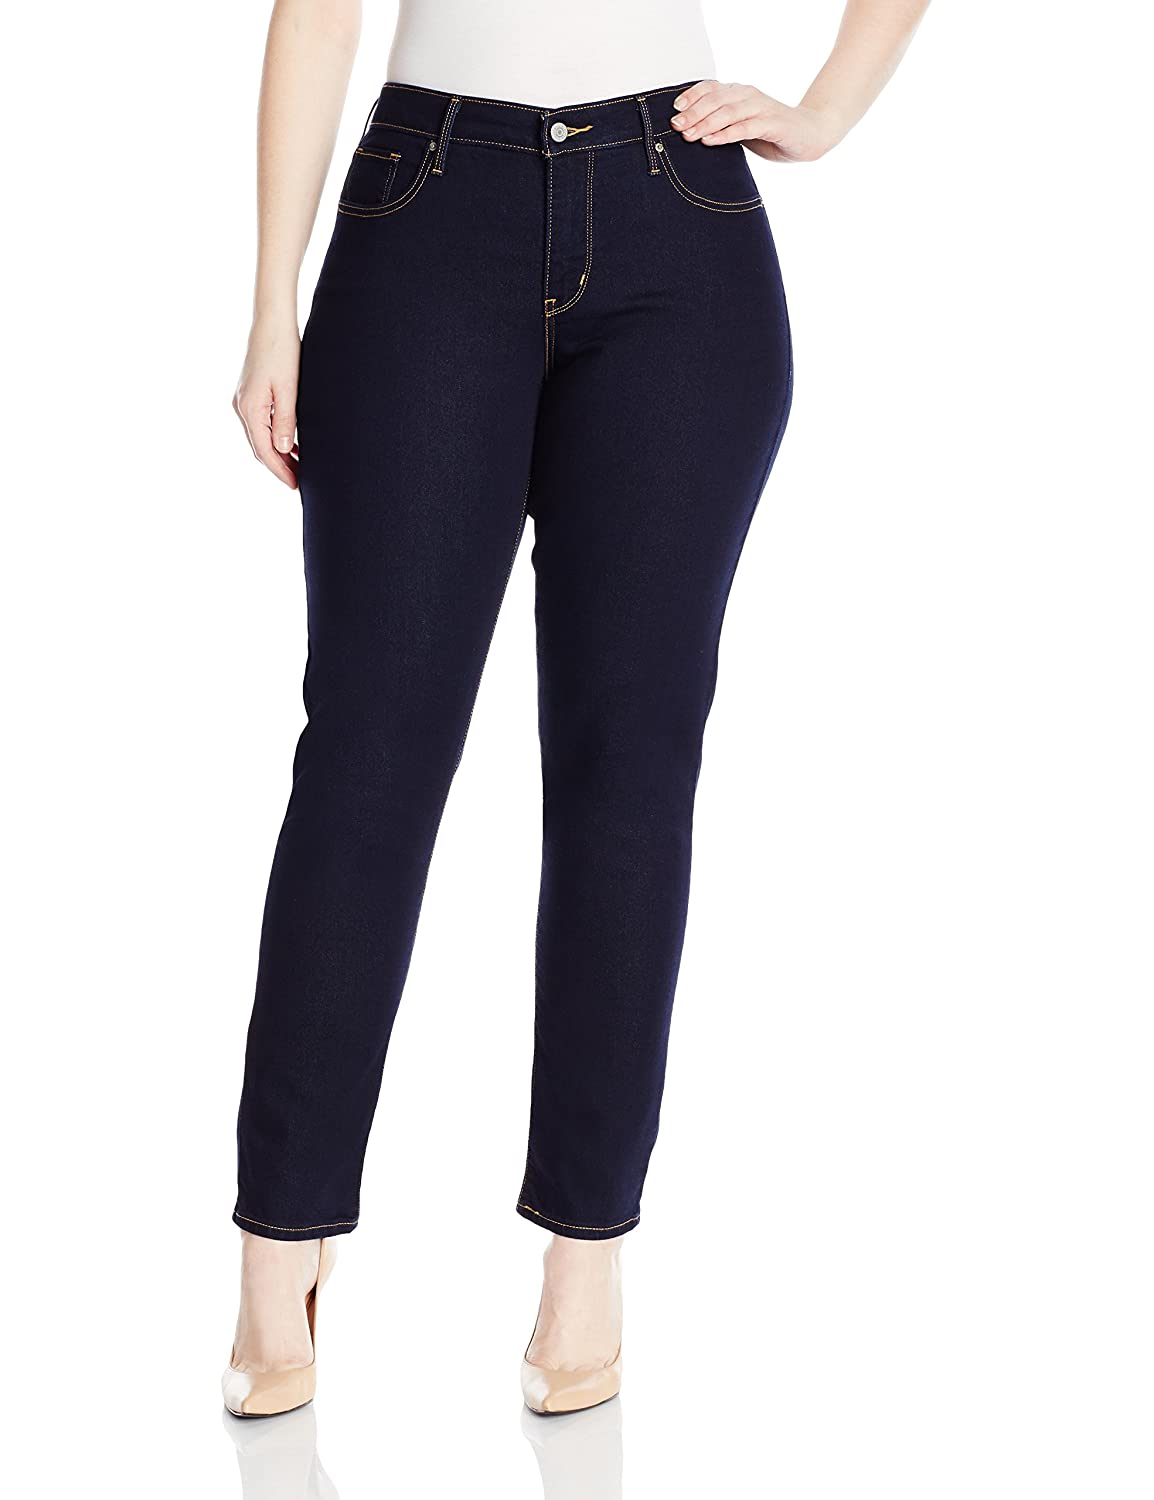 Levi's Women's Plus Size 311 Shaping Skinny Jeans at Amazon ...